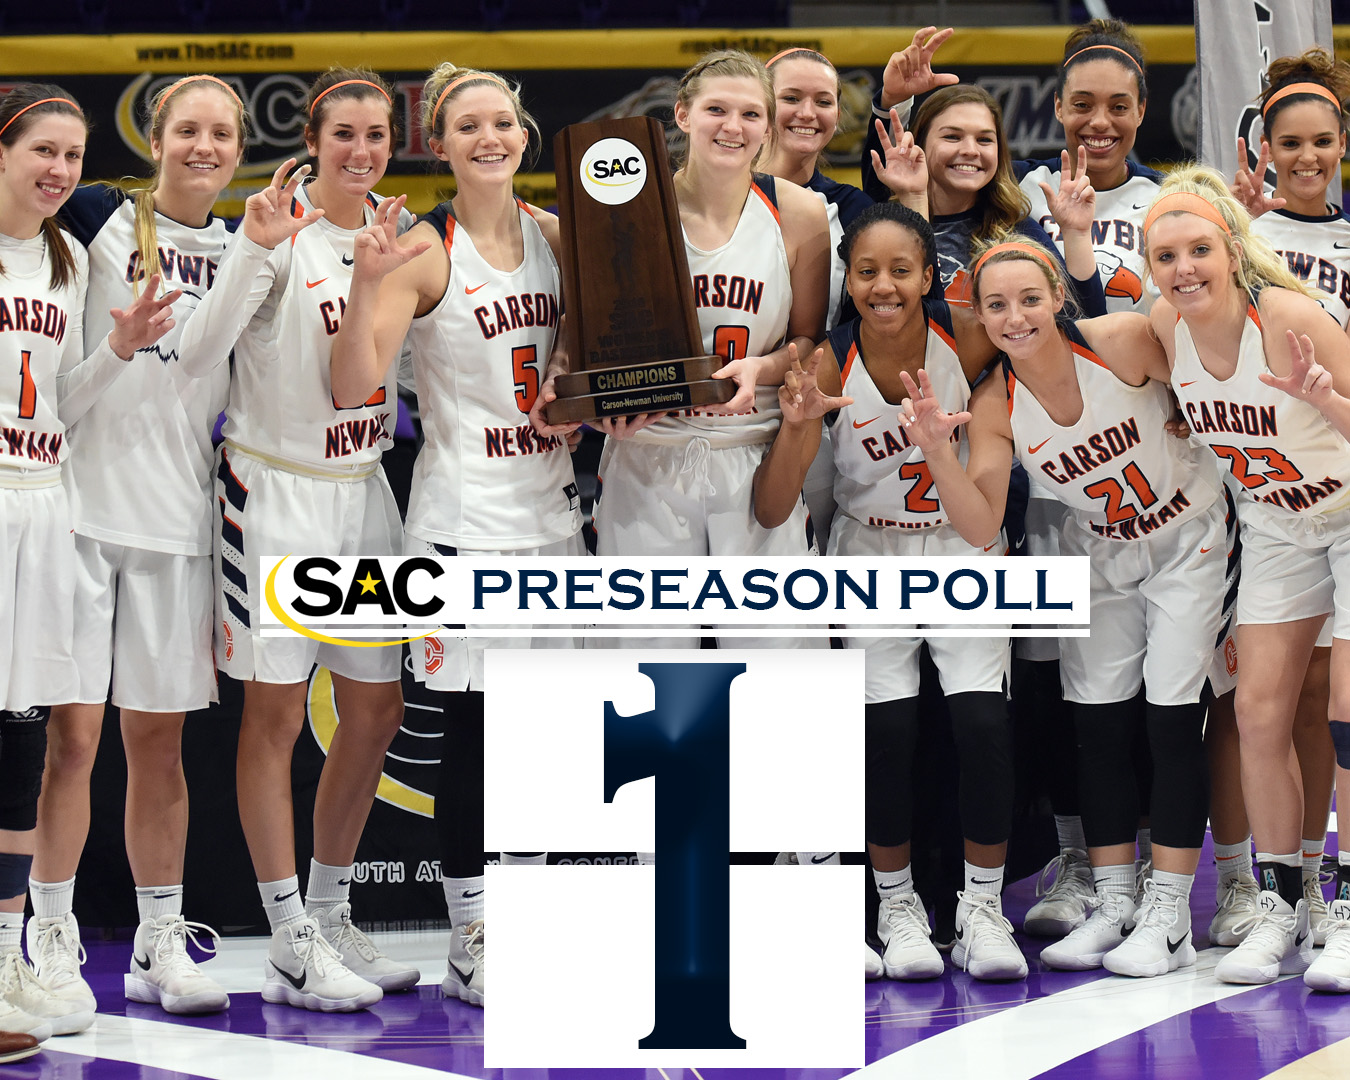 Lady Eagles picked to repeat as SAC Champions